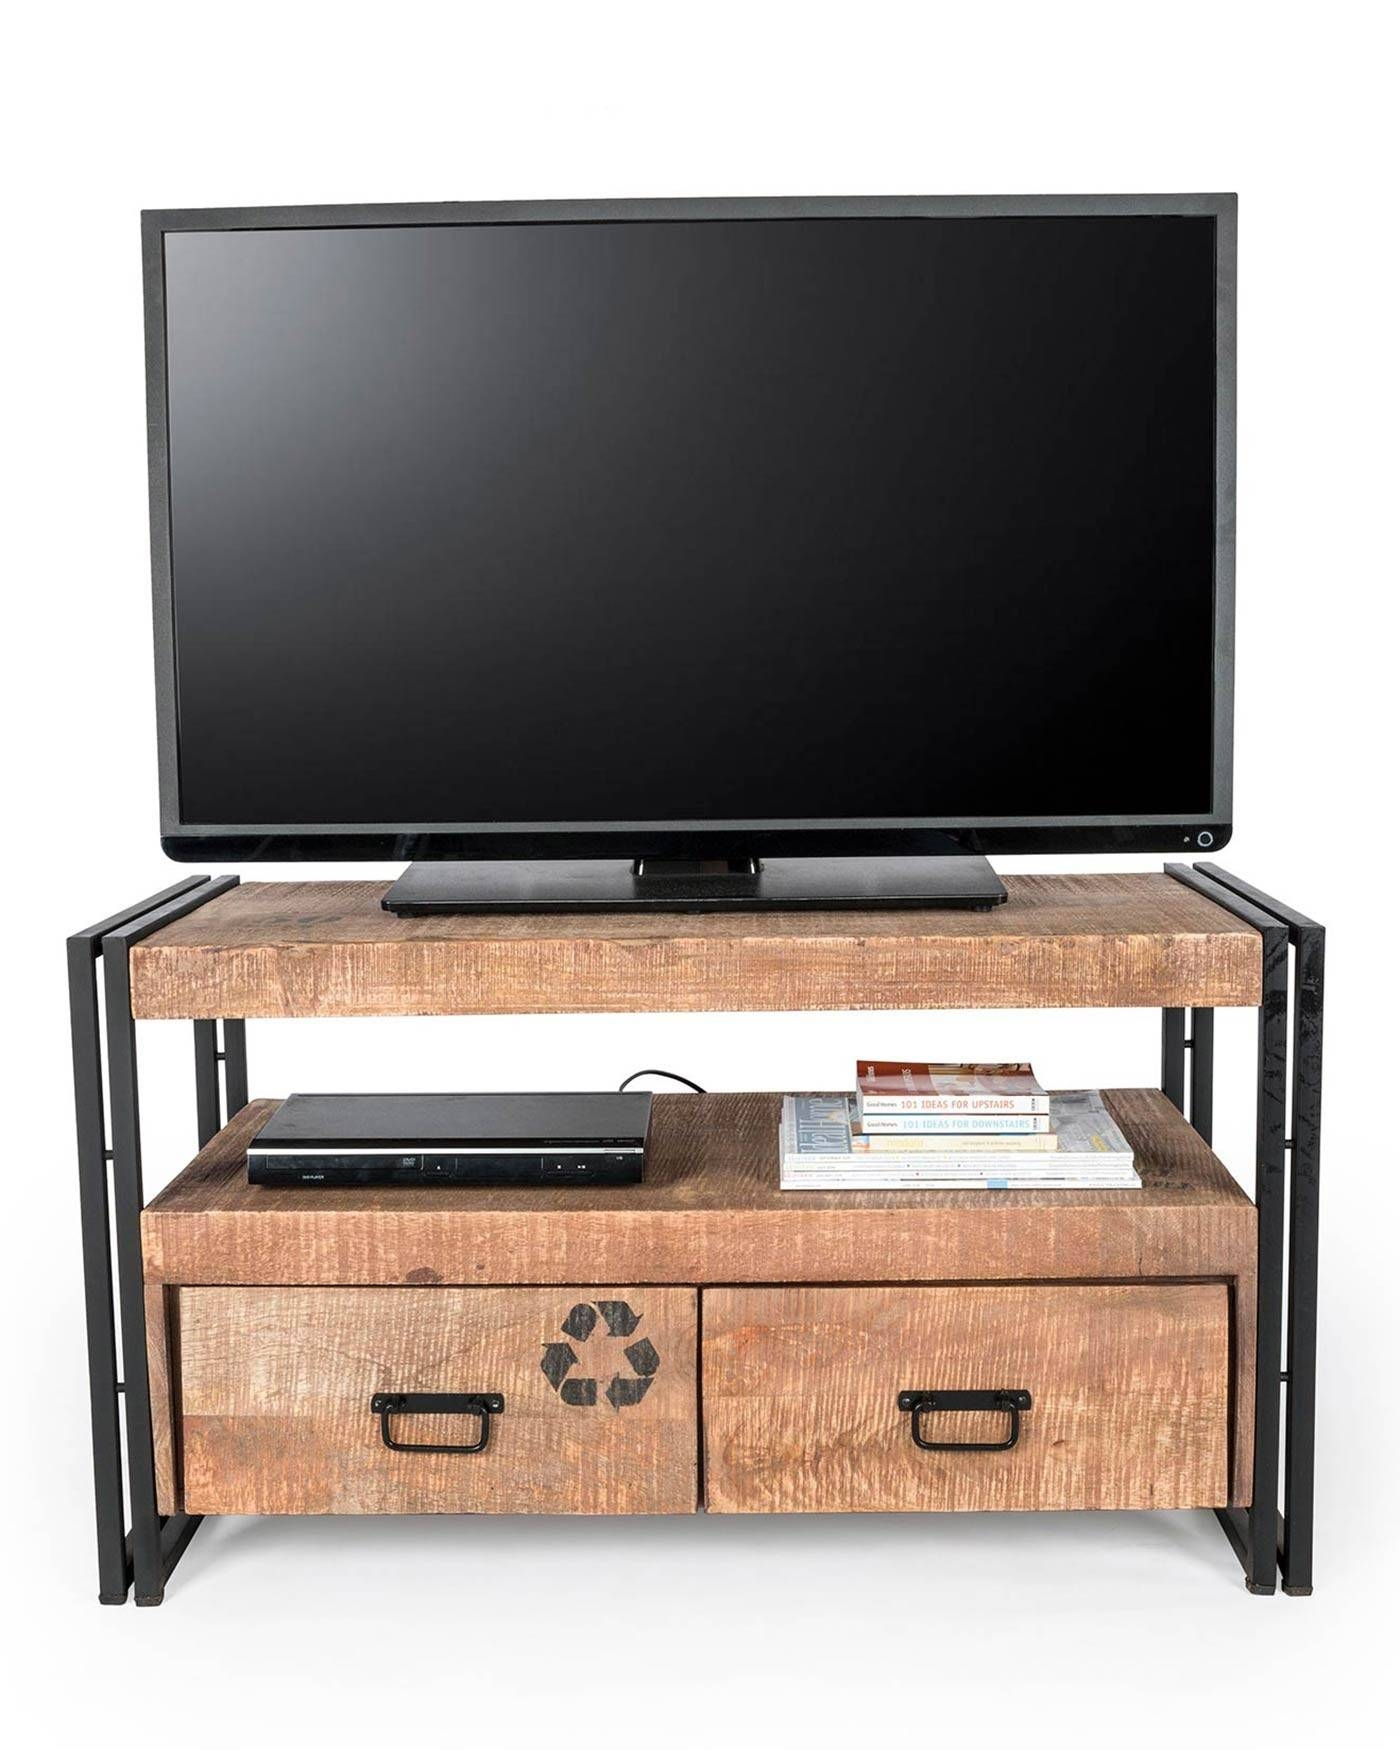 Reclaimed Wood Tv Stand Industrial Furniture Range - Homescapes inside Recycled Wood Tv Stands (Image 8 of 15)